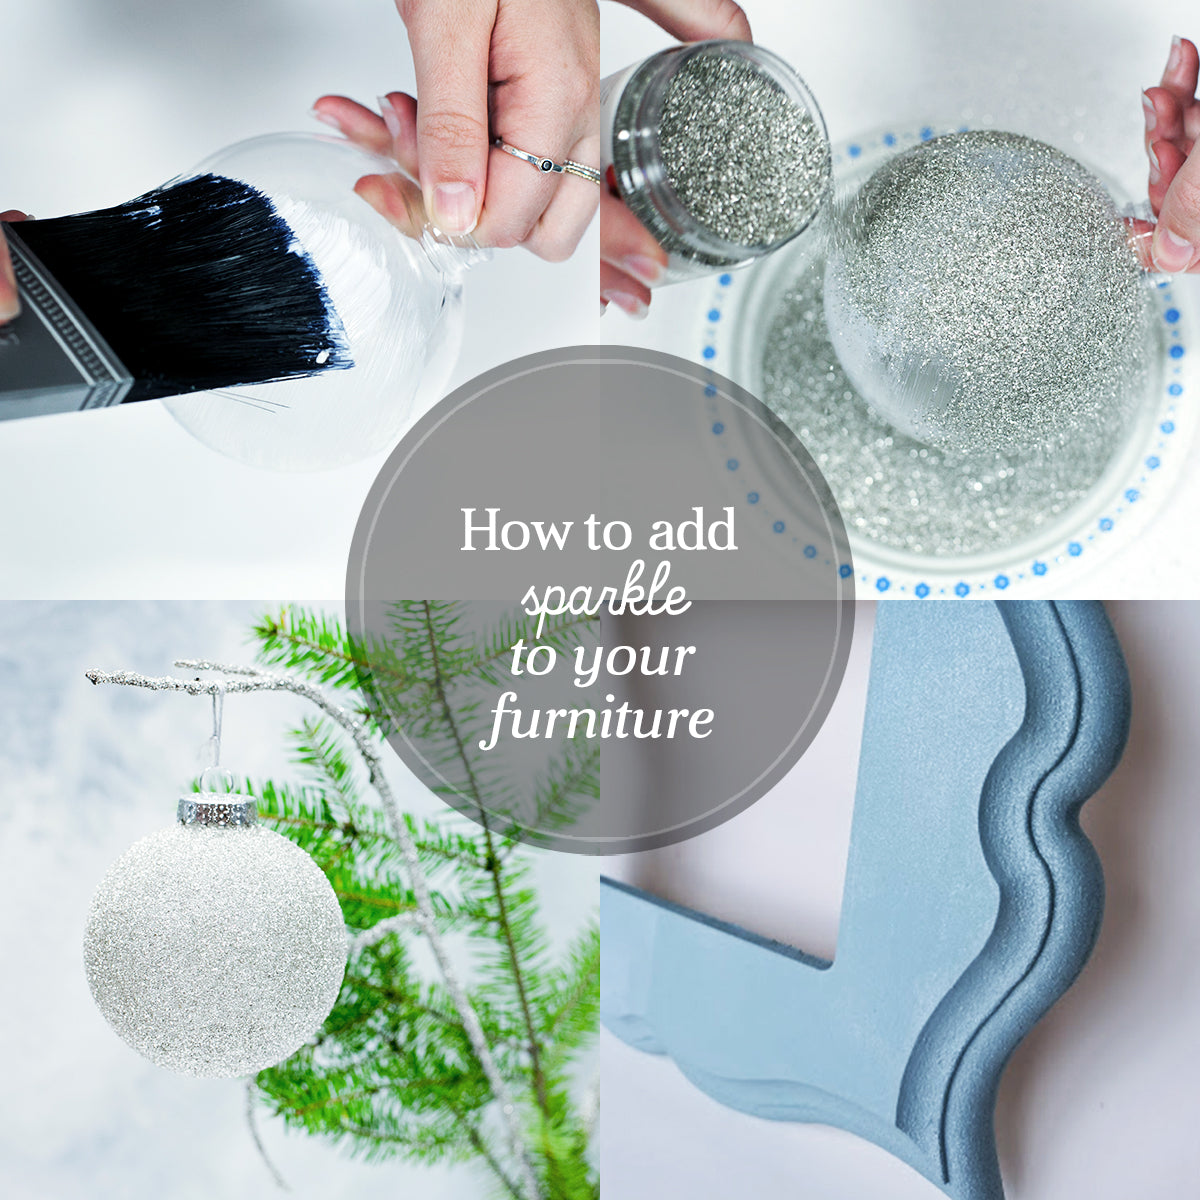 Glass Glitter, Shimmer Glaze, and Sparkle Glaze Tutorial - how to add glitz and sparkle to your furniture and home decor with Country Chic Paint products